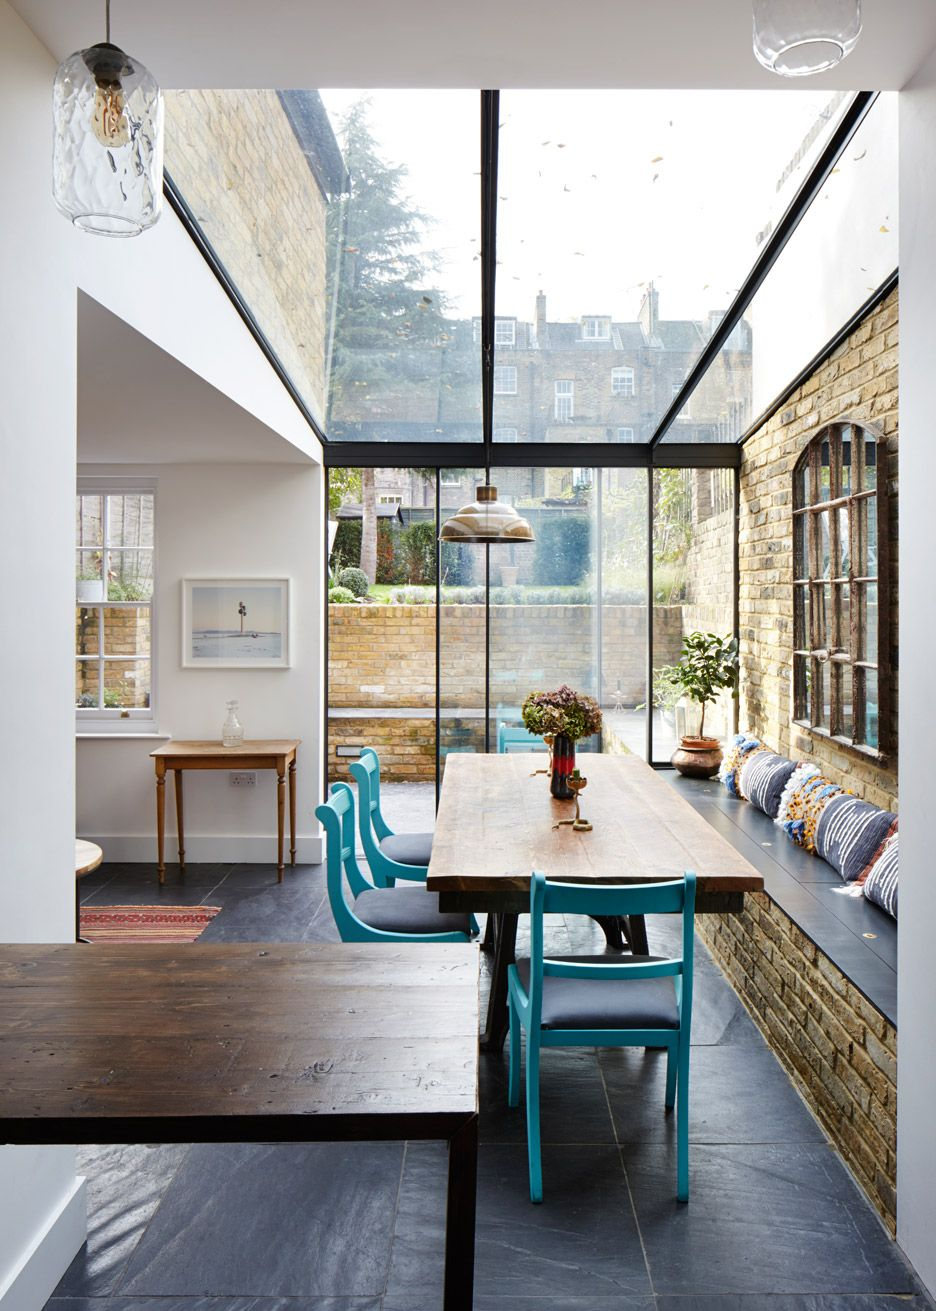 h t adds jewel like glass extension to east london house style urban living pinterest. Black Bedroom Furniture Sets. Home Design Ideas